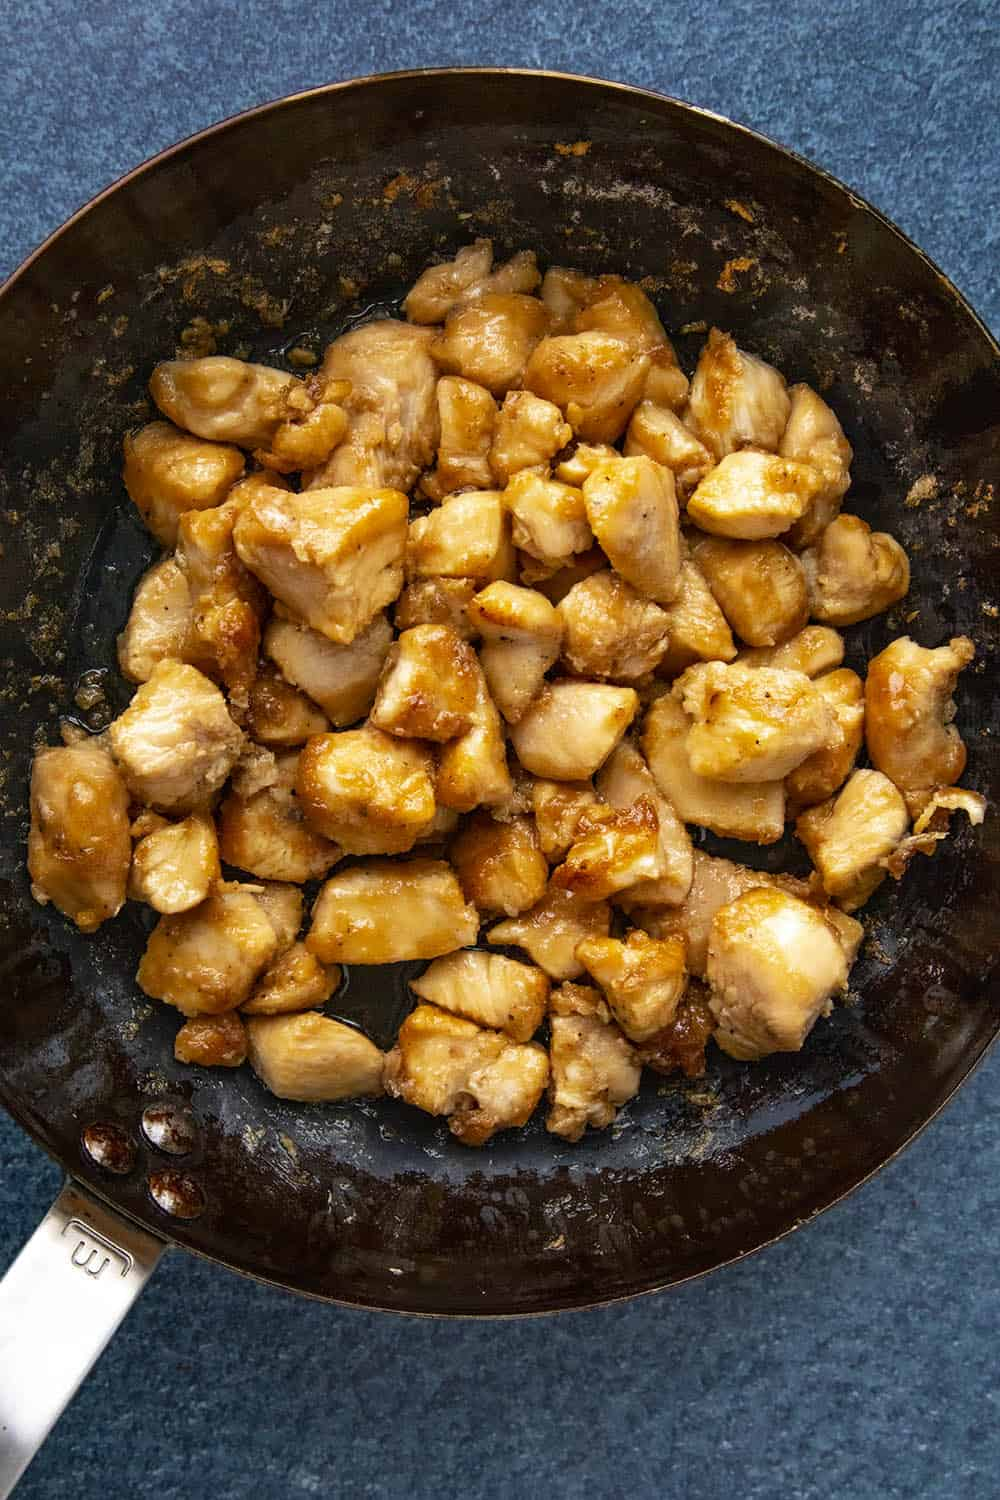 Cooking the seasoned chicken in a hot pan